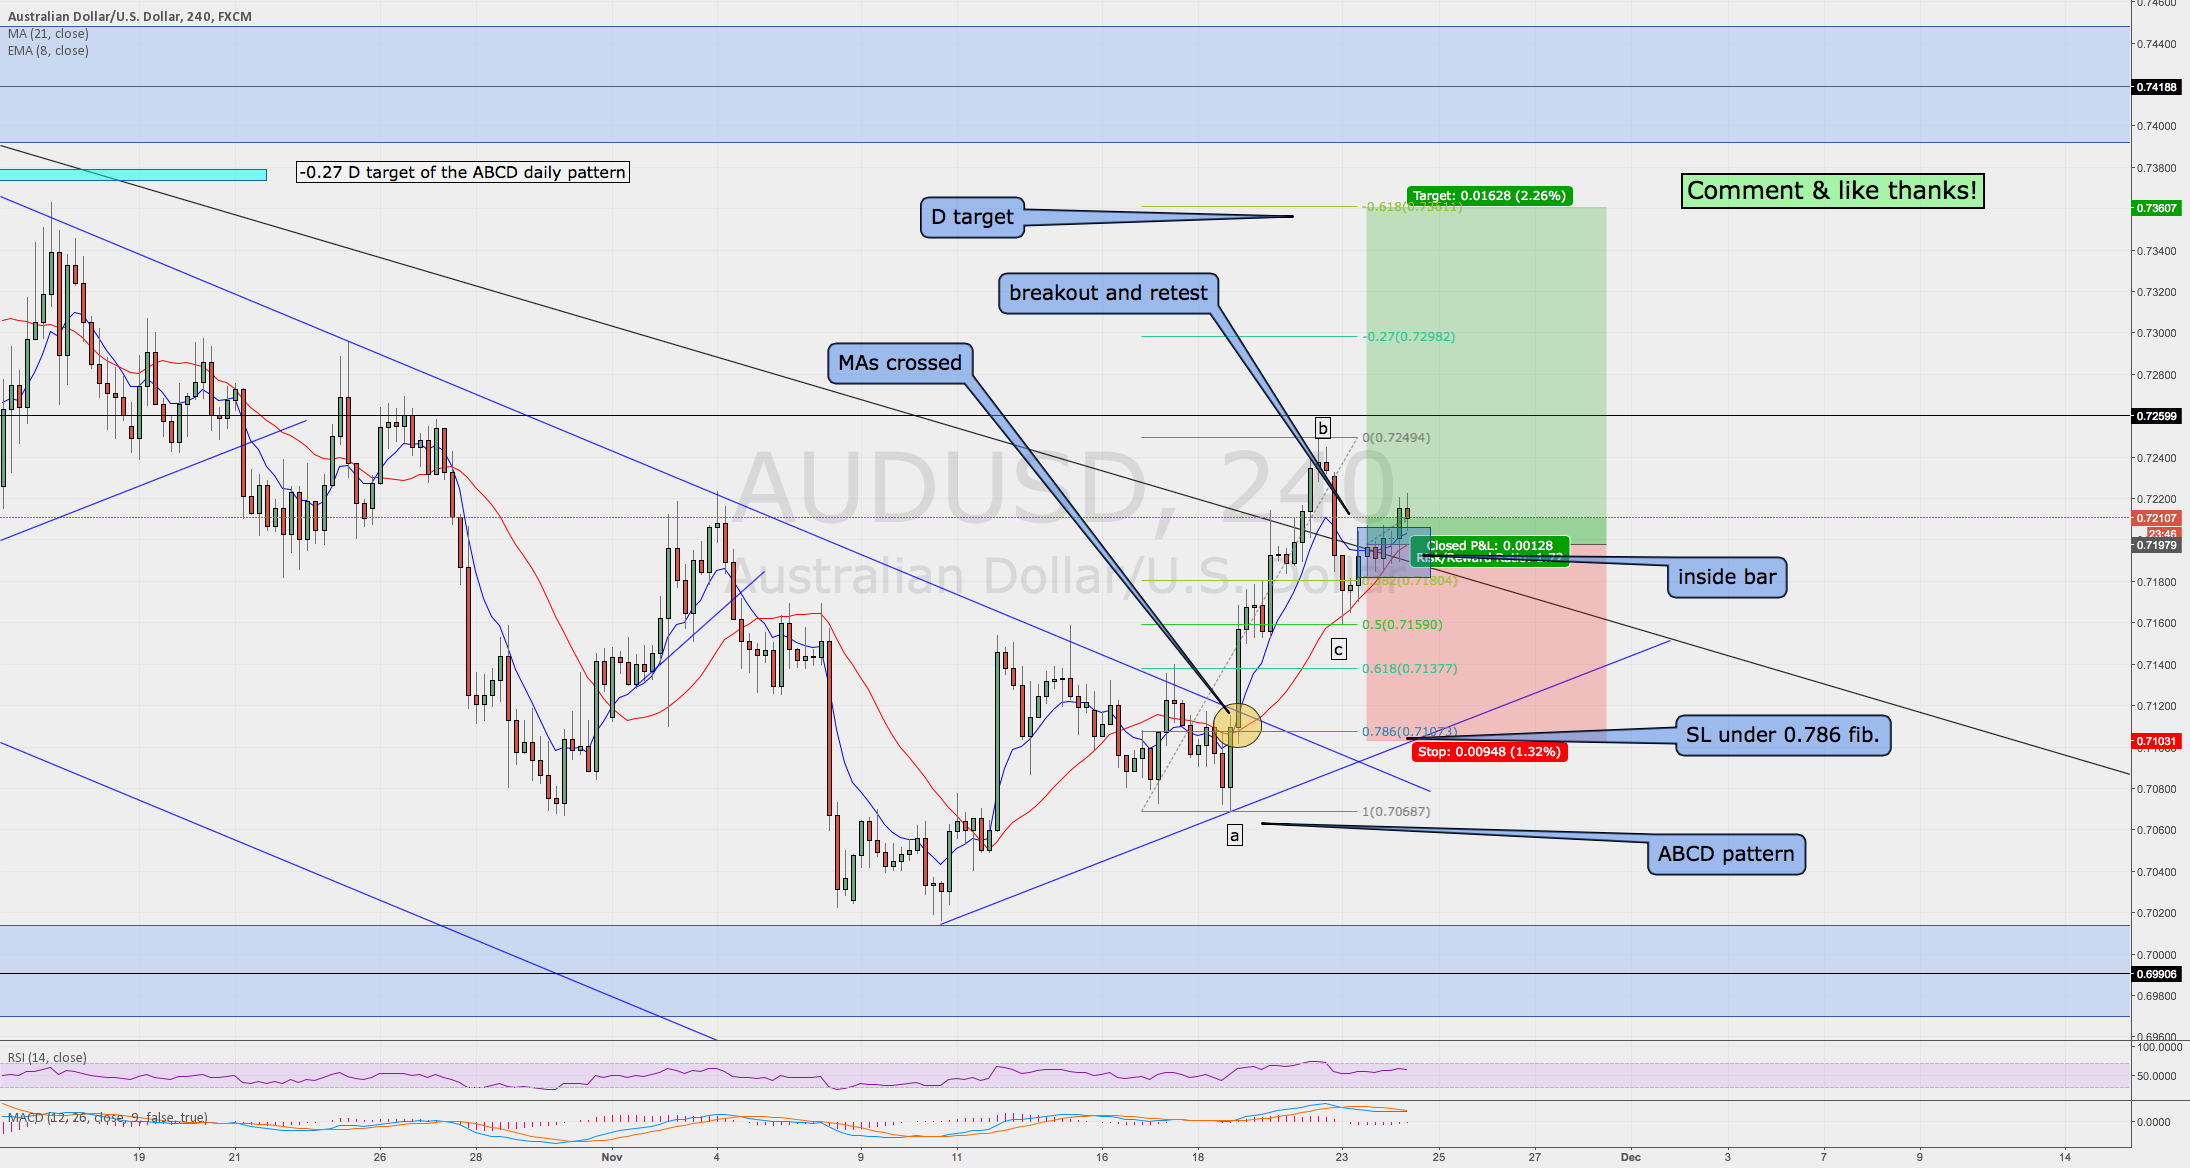 AUDUSD breakout and retest, a good long opportunity